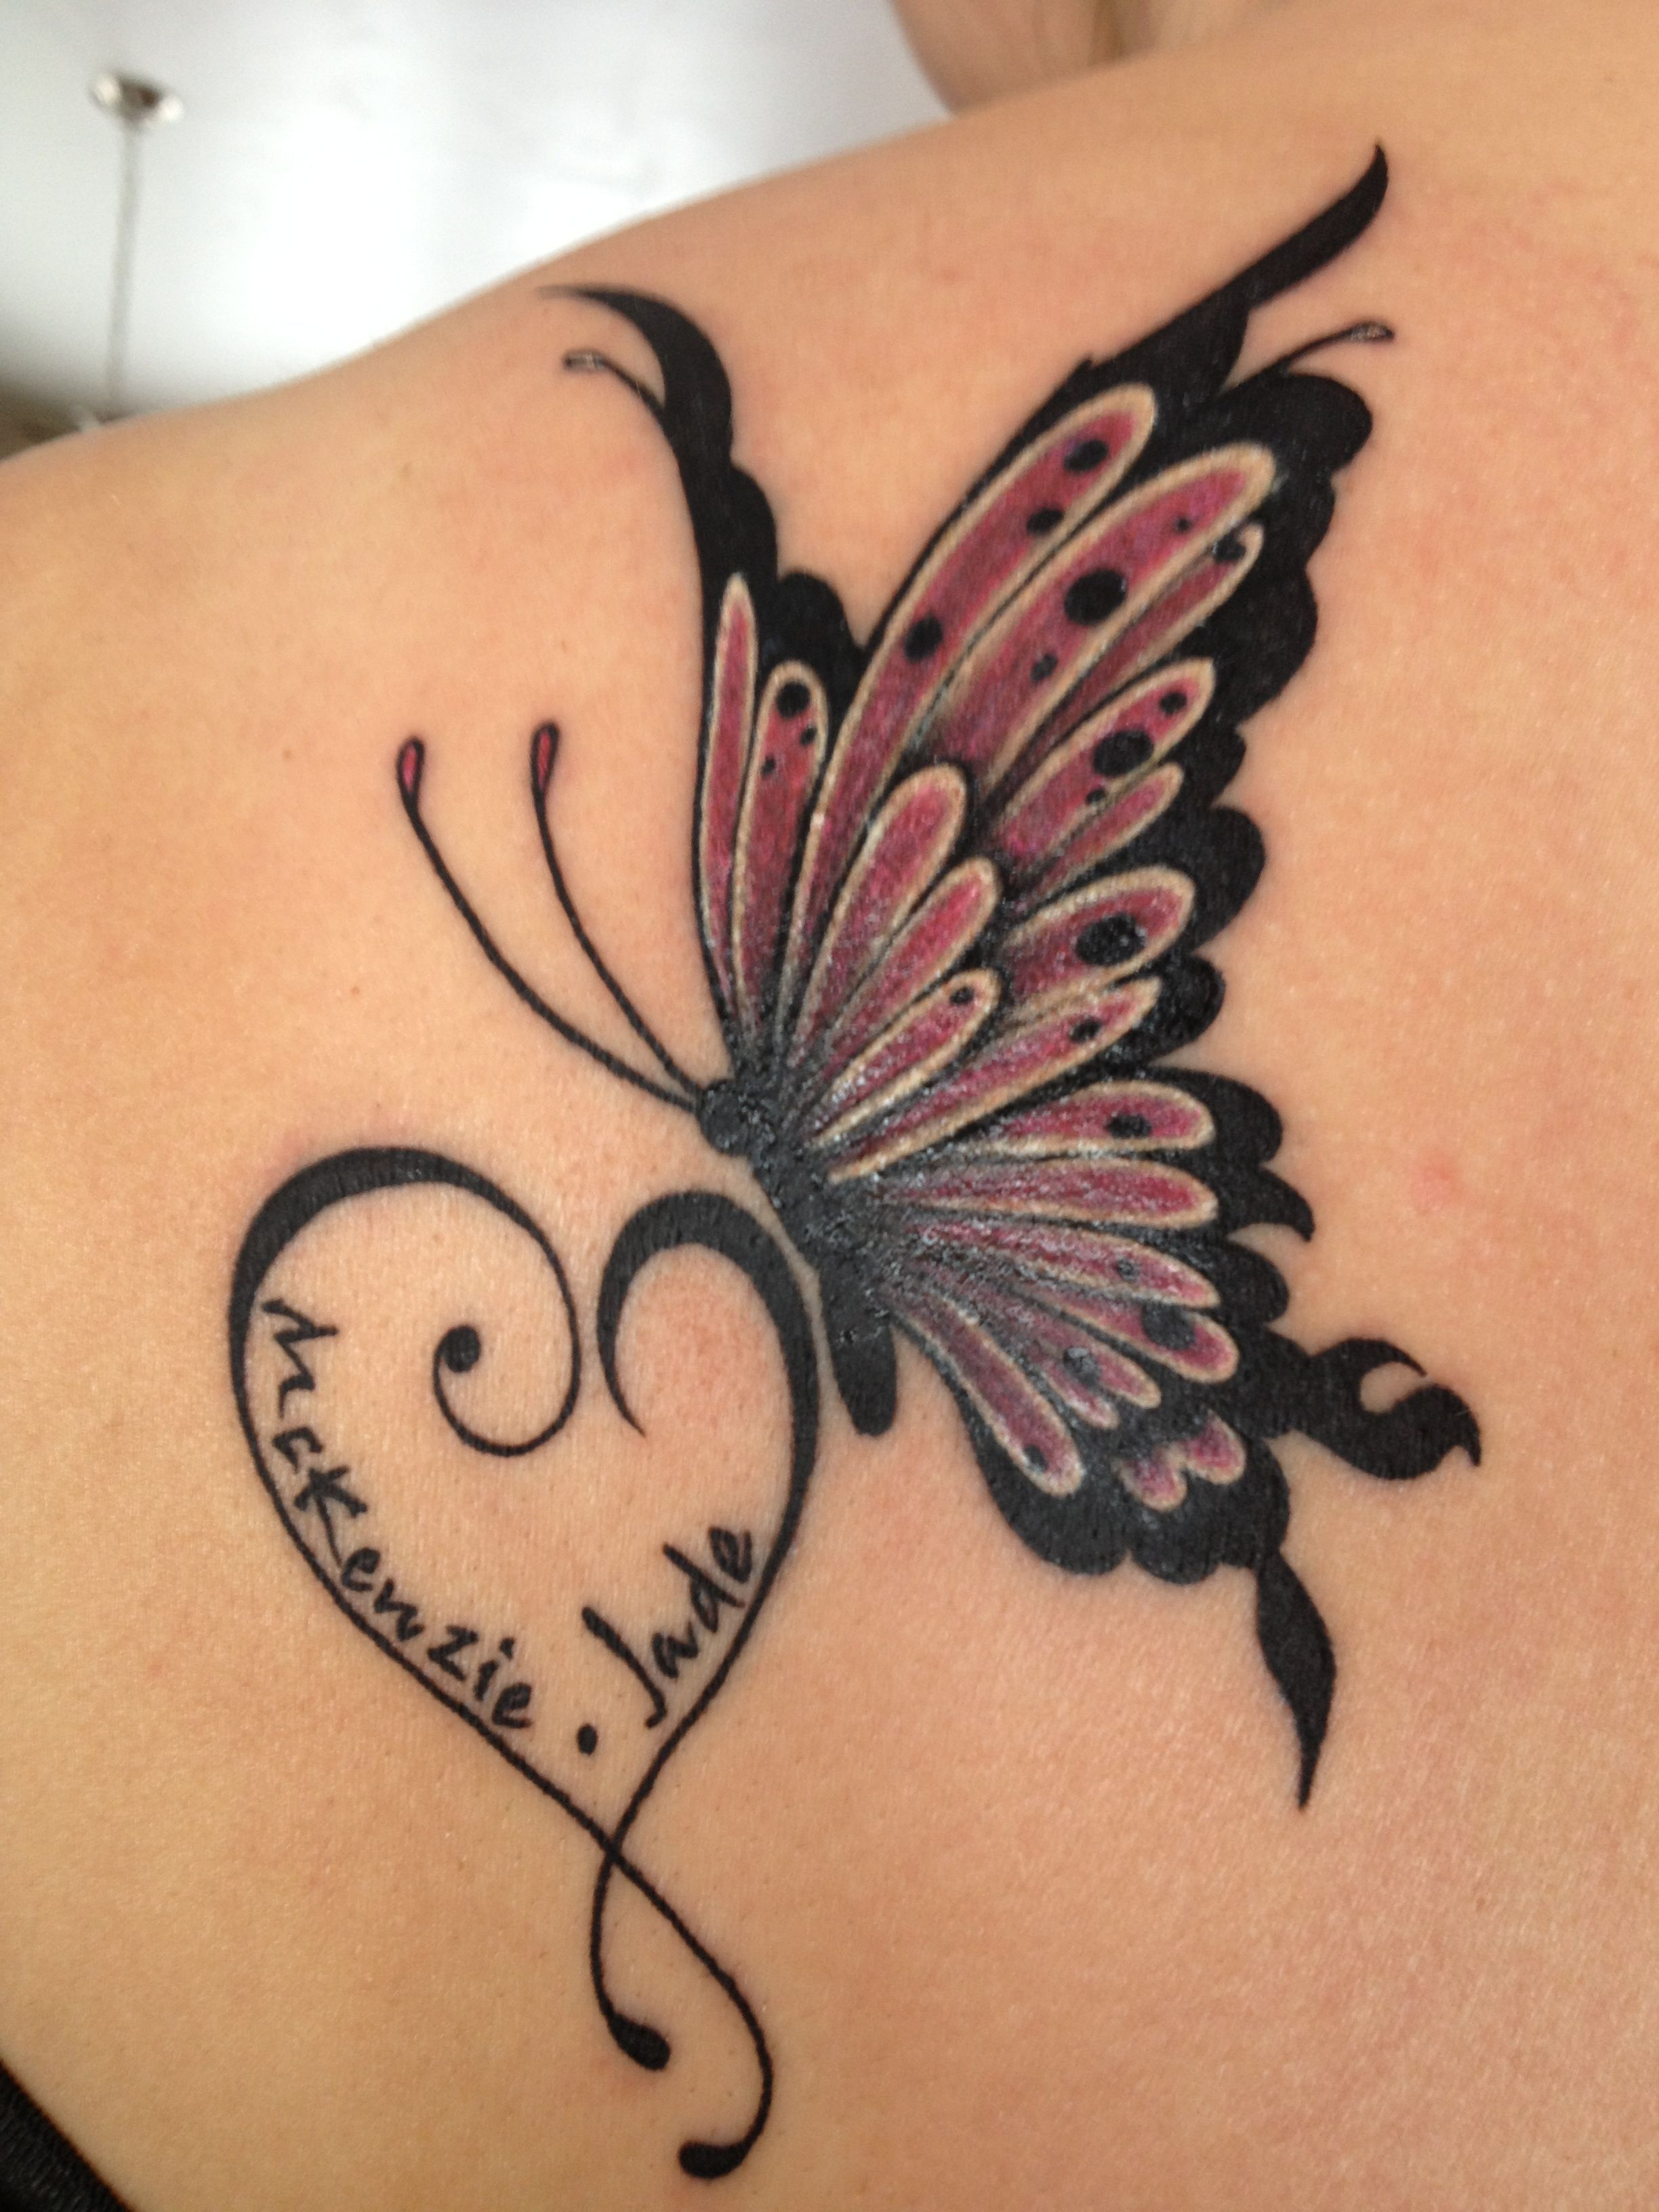 Pin By Rachel Janda On Tattoos Tattoos For Kids Trendy Tattoos Tattoos For Daughters